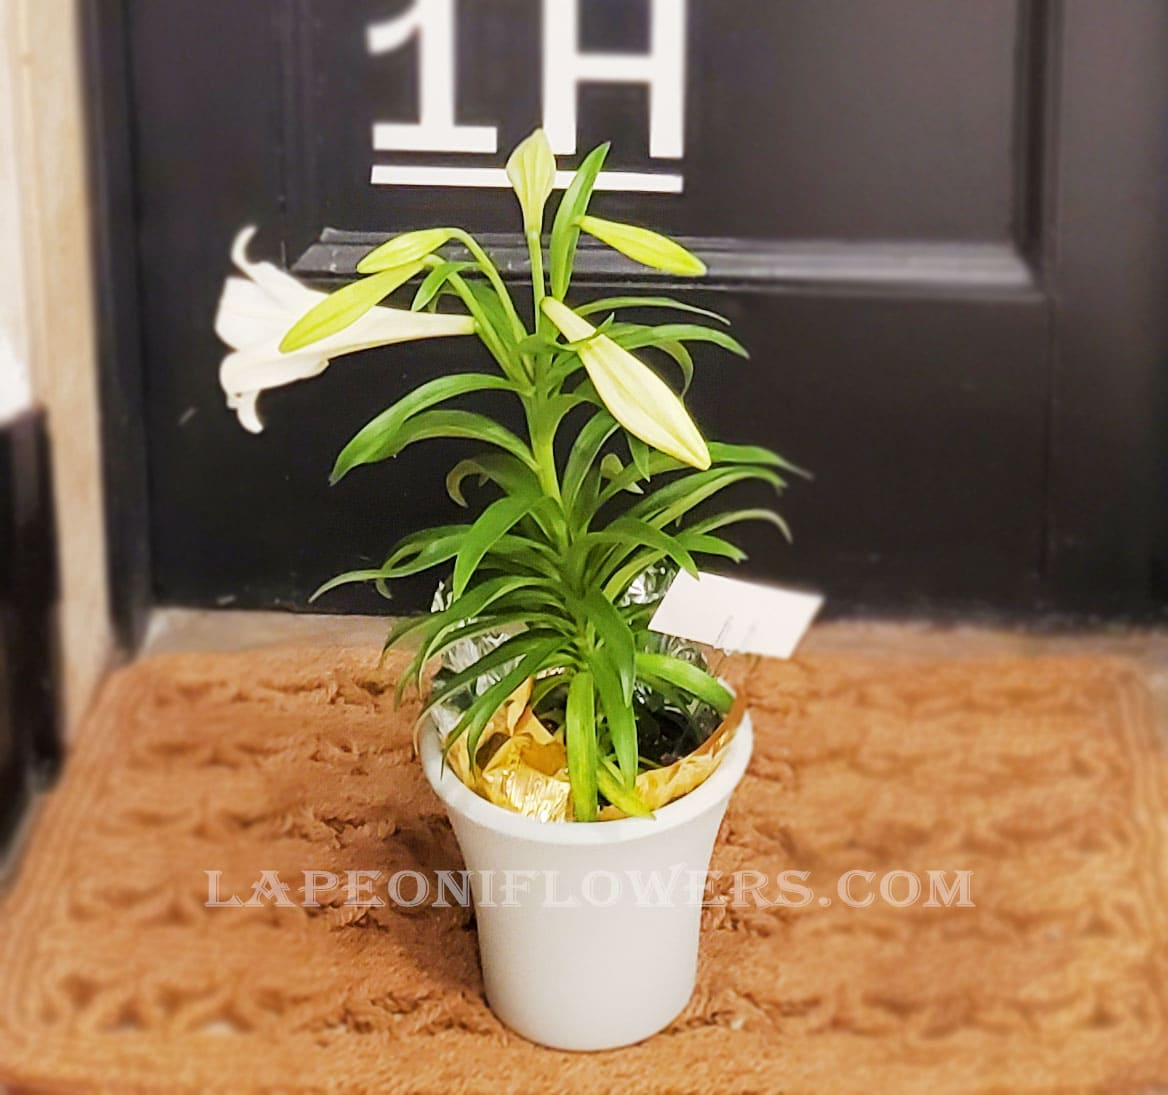 Lily Plant - Lapeoni Flowers and Events